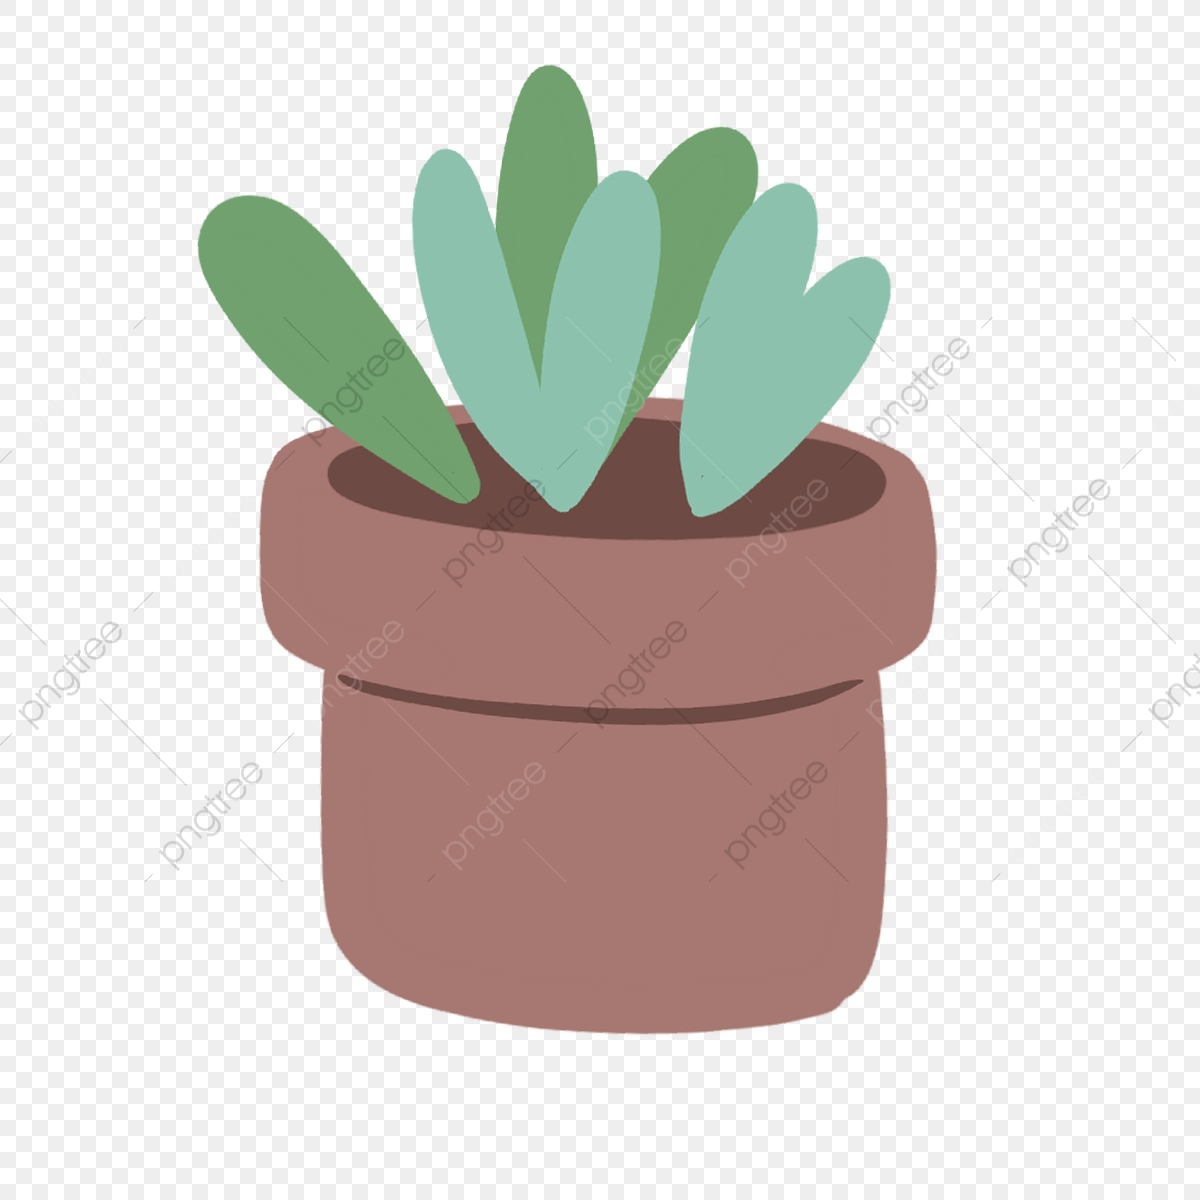 Hand Drawn Cute Succulent In Pot Garden Drawing Succulents Png Transparent Clipart Image And Psd File For Free Download